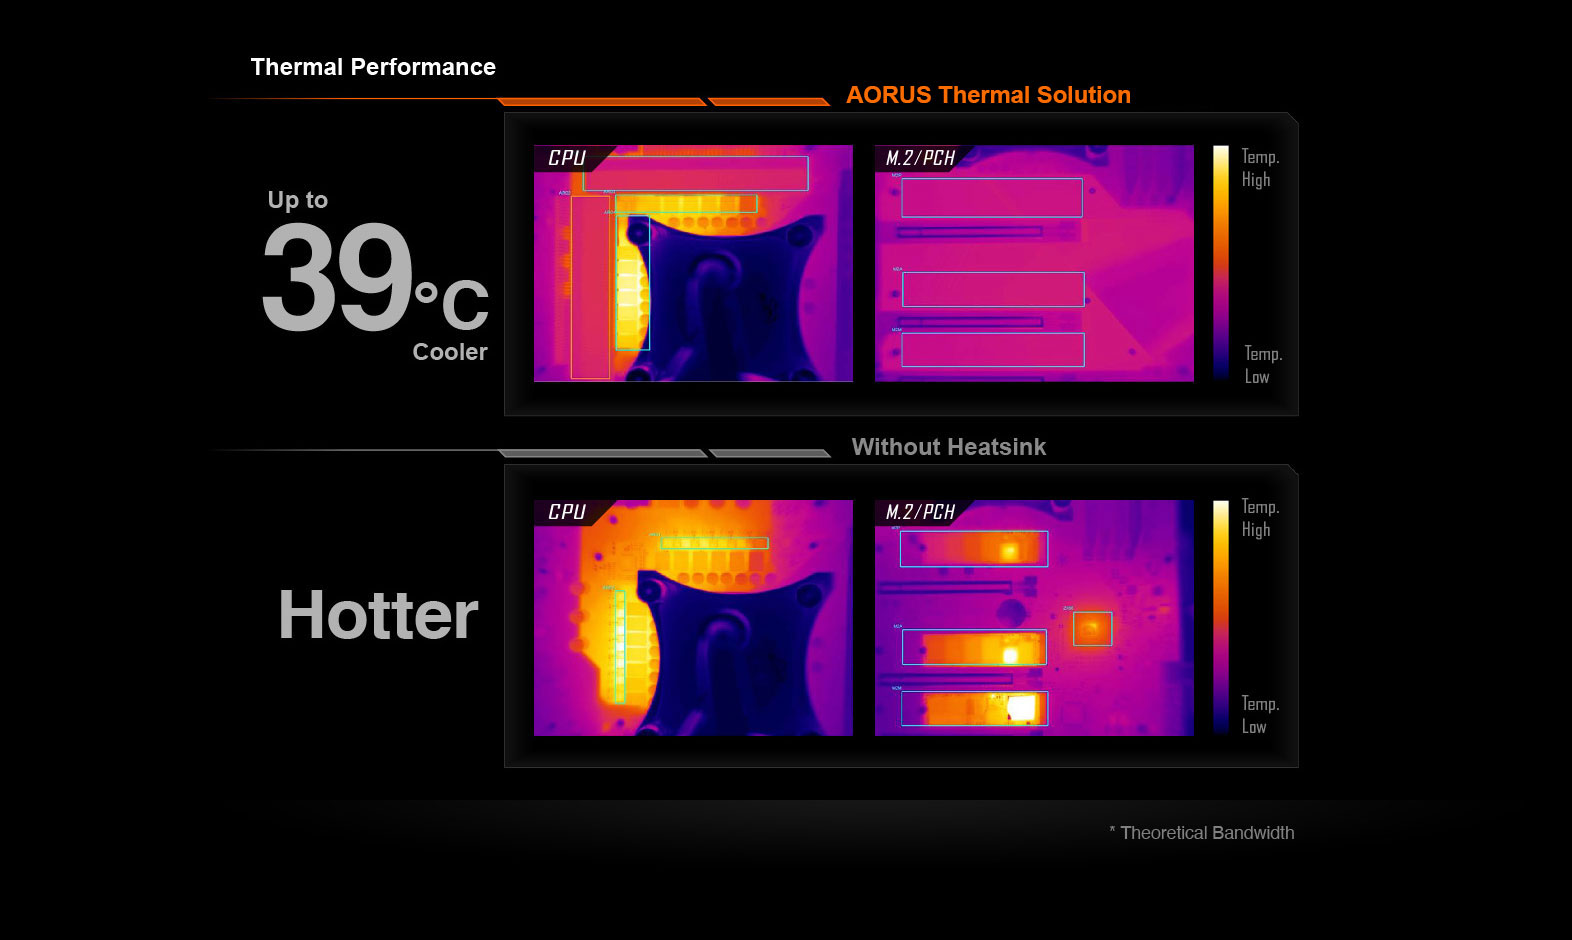 two images showing different between 39 degree and hotter